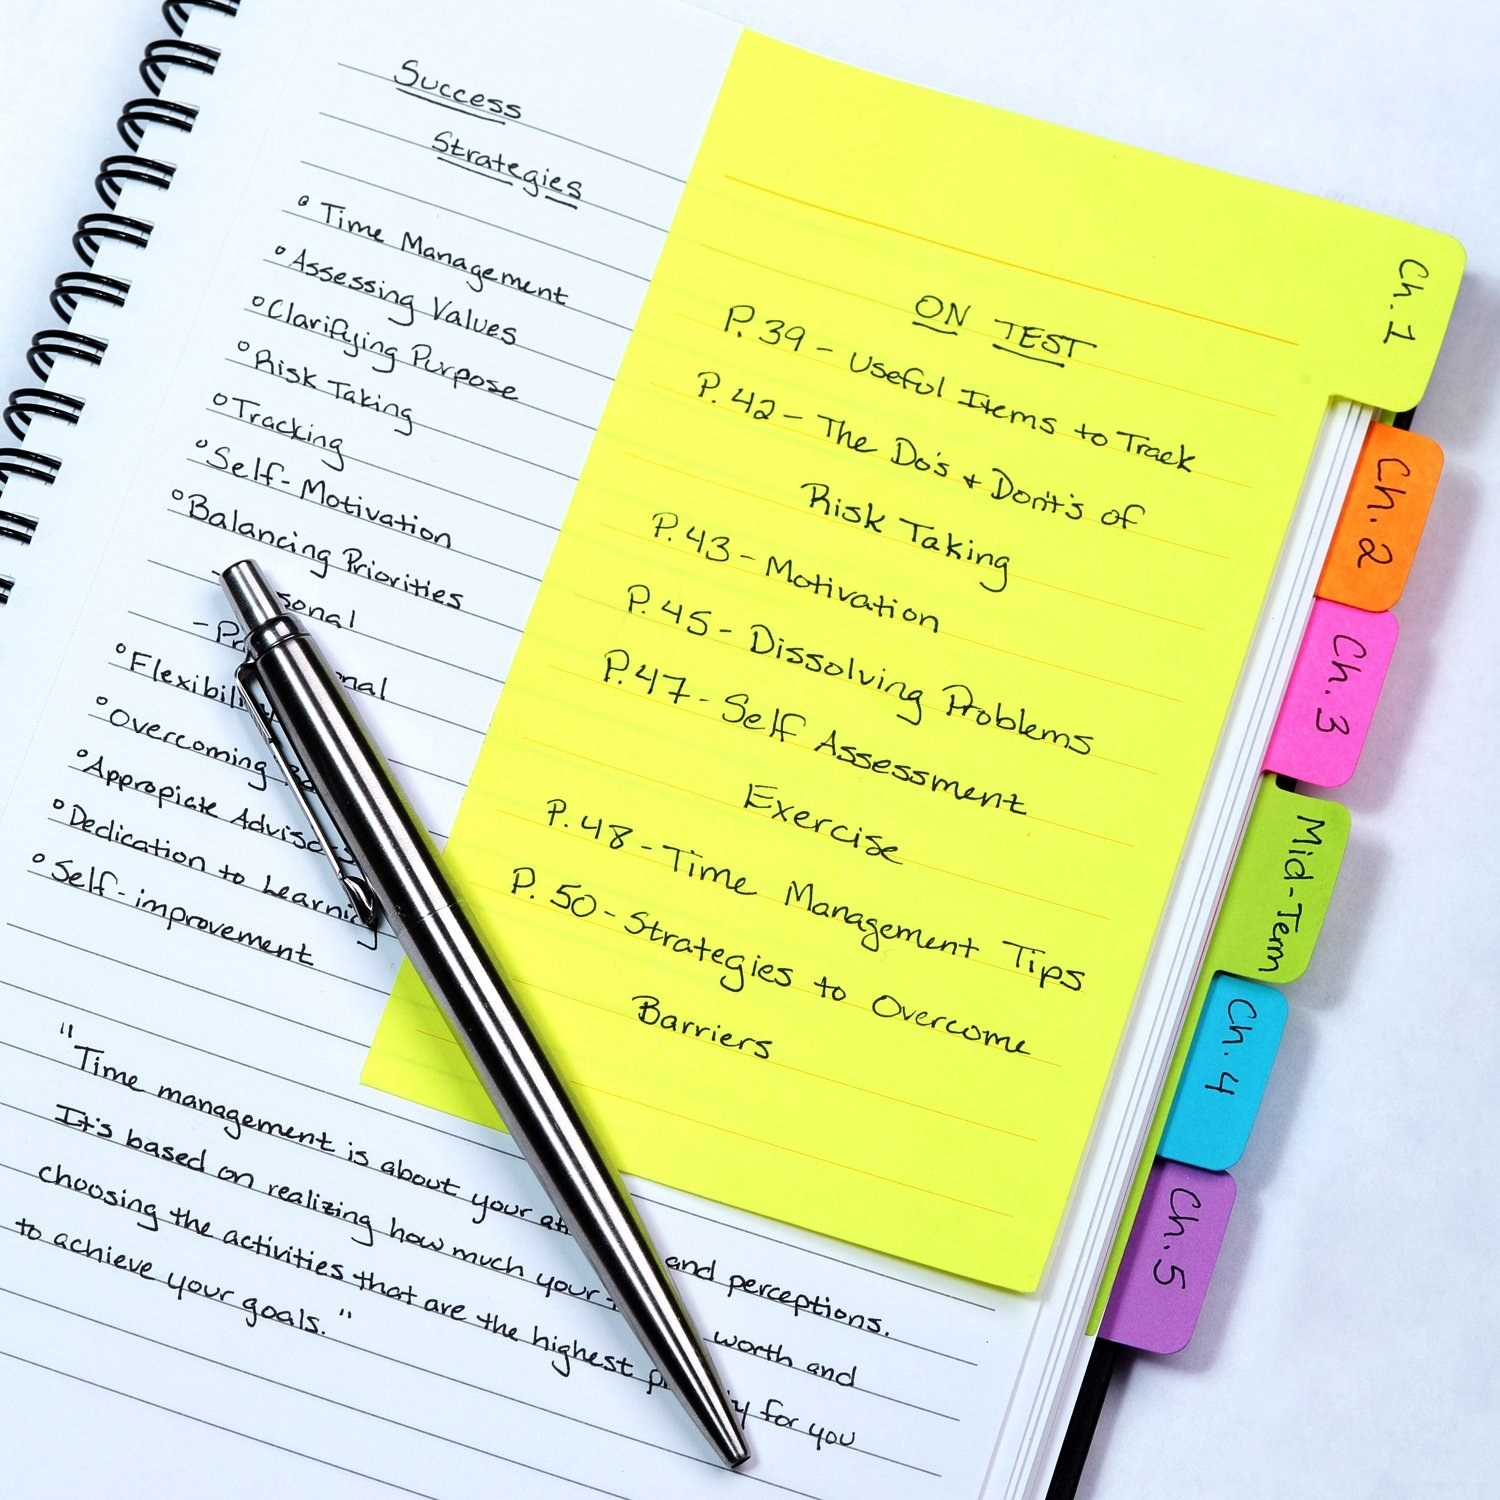 A ruled sticky note on top of a page of notes